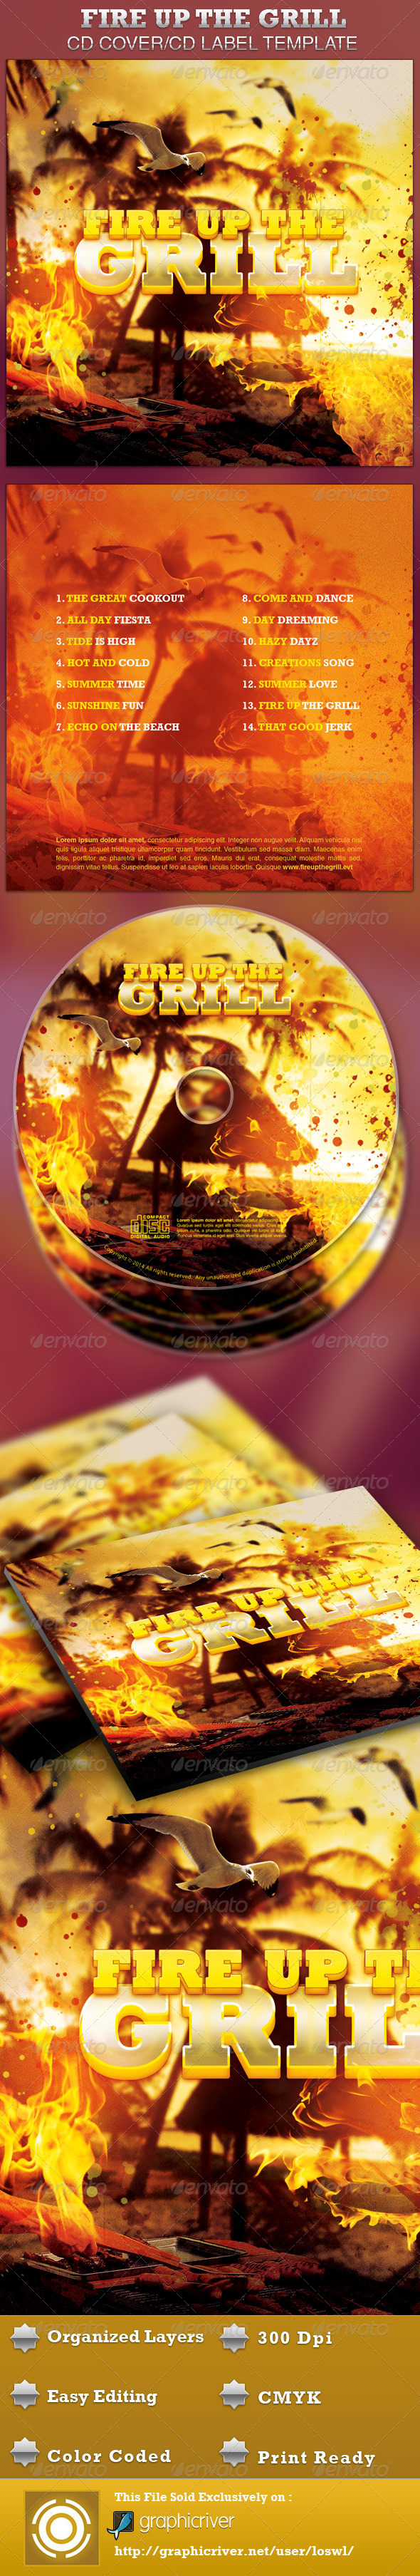 GraphicRiver Fire Up The Grill CD Artwork Template 4281064